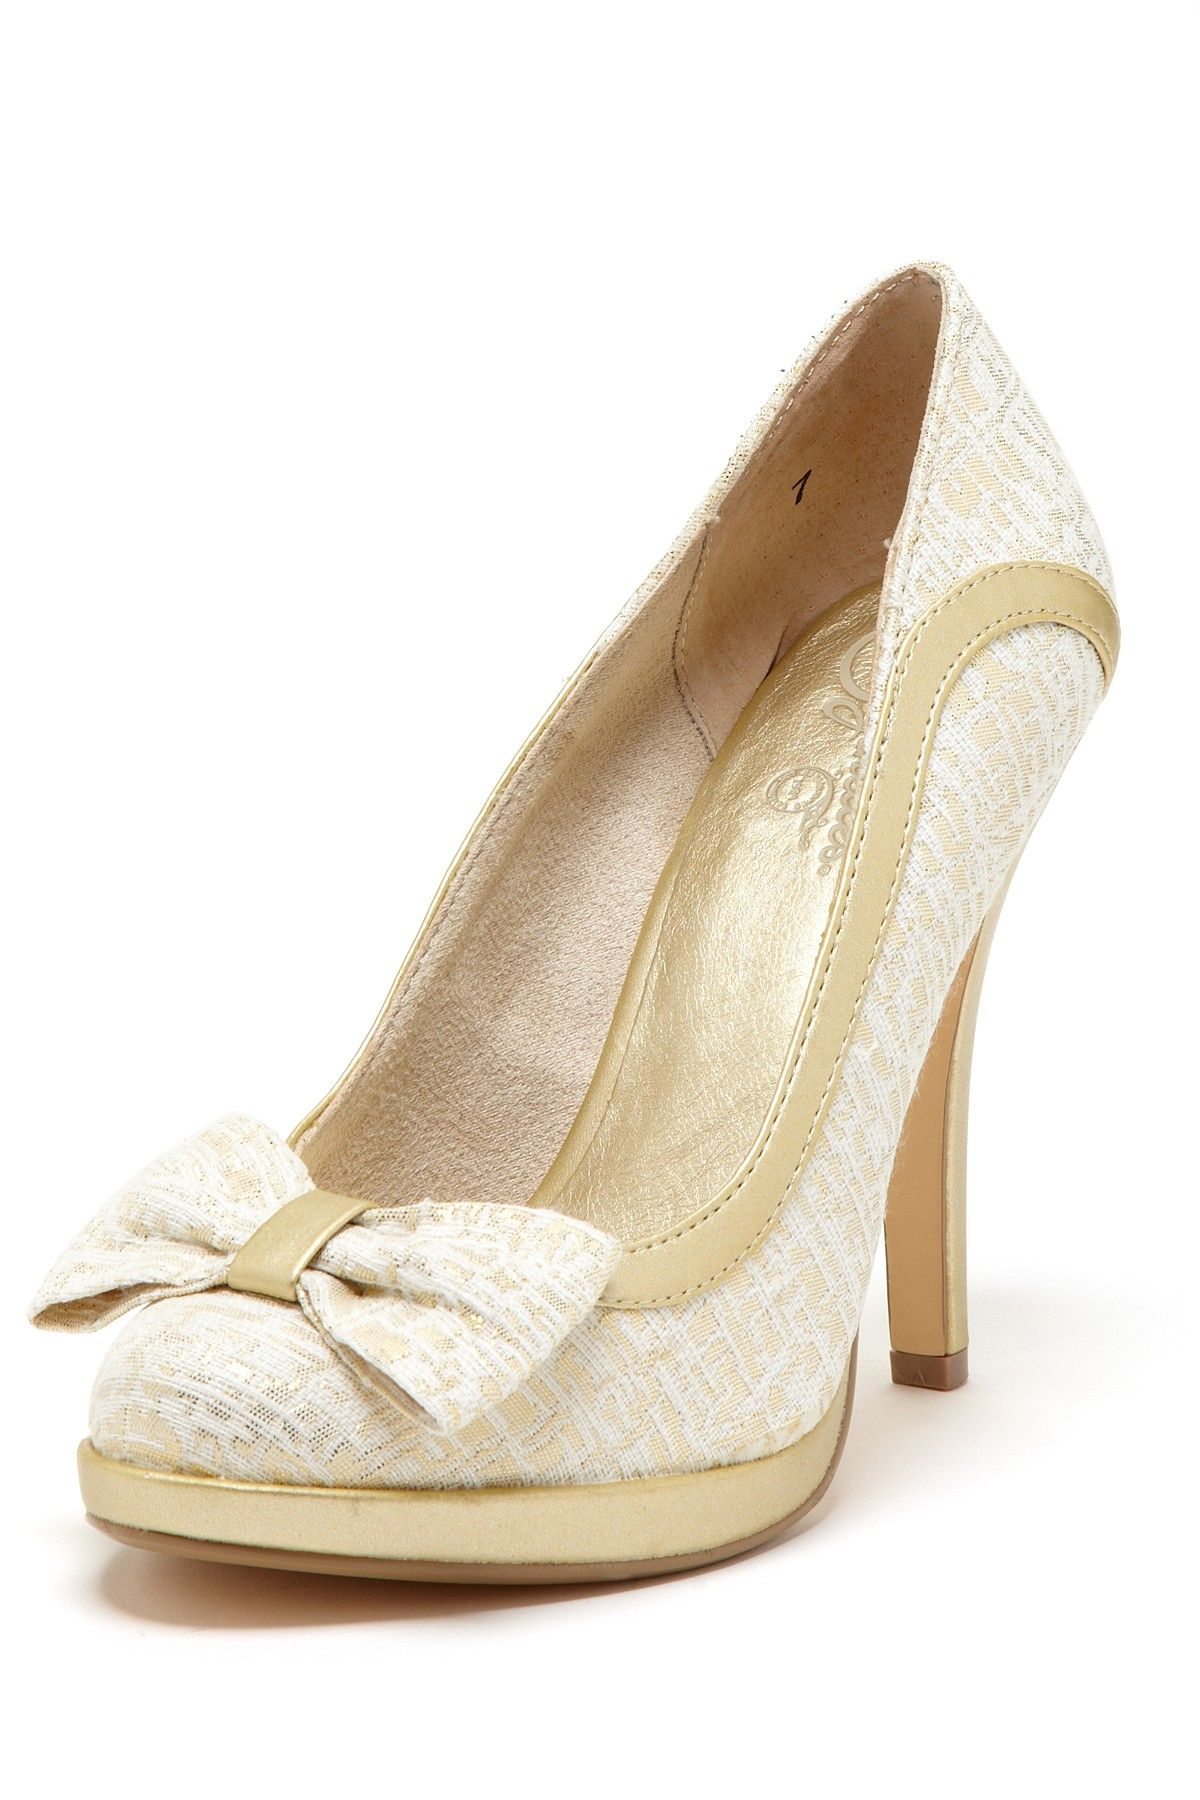 a6588826ef Seychelles Exclamation Point Pump